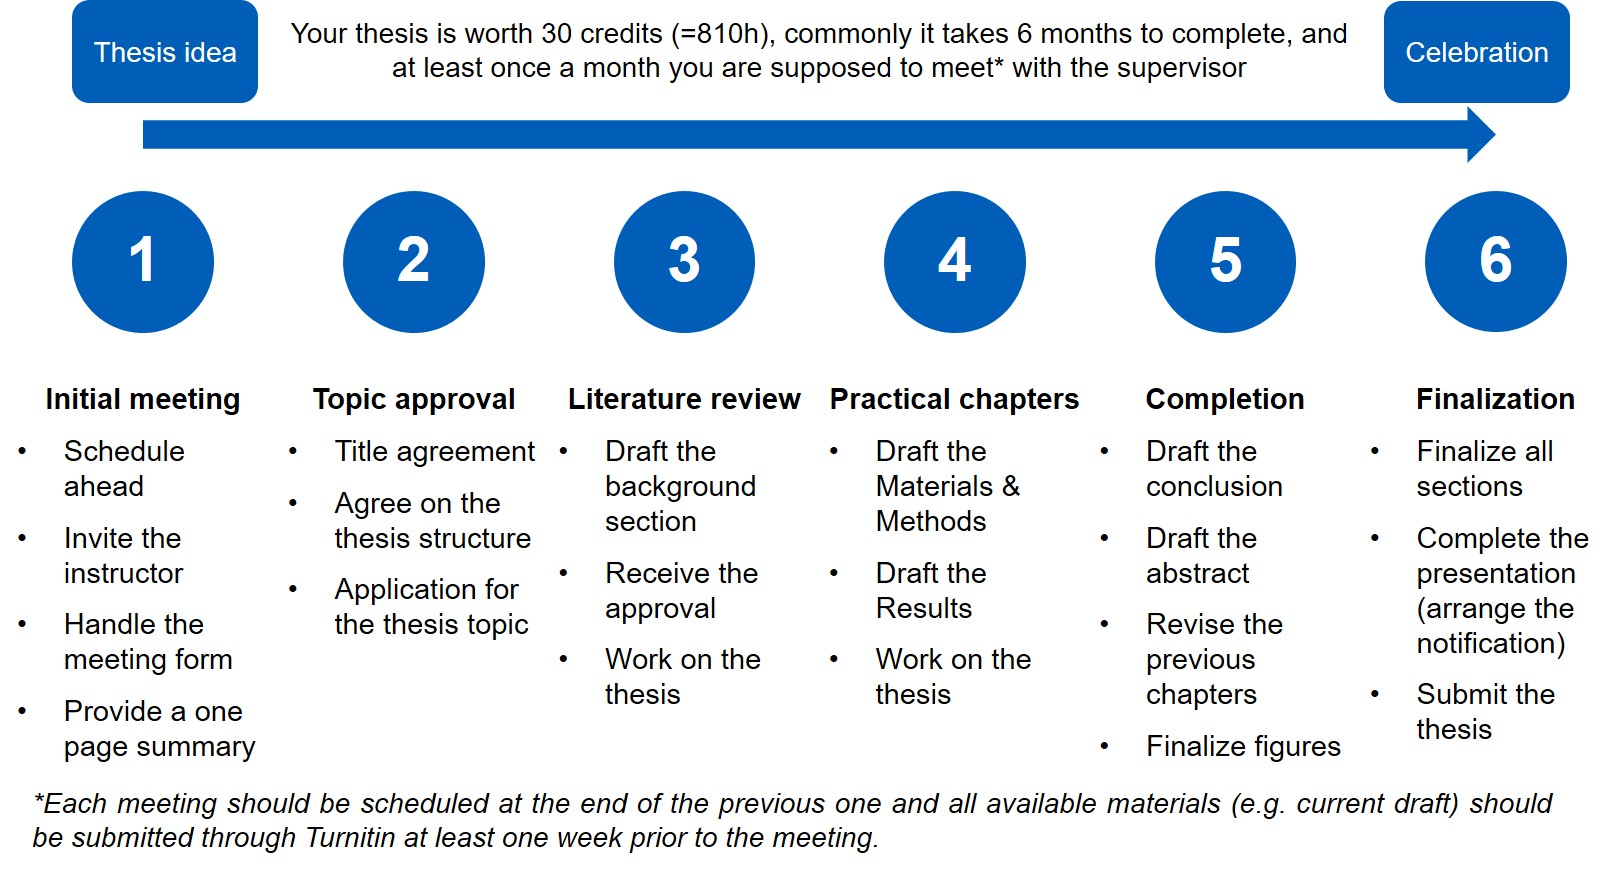 MSc thesis timeline